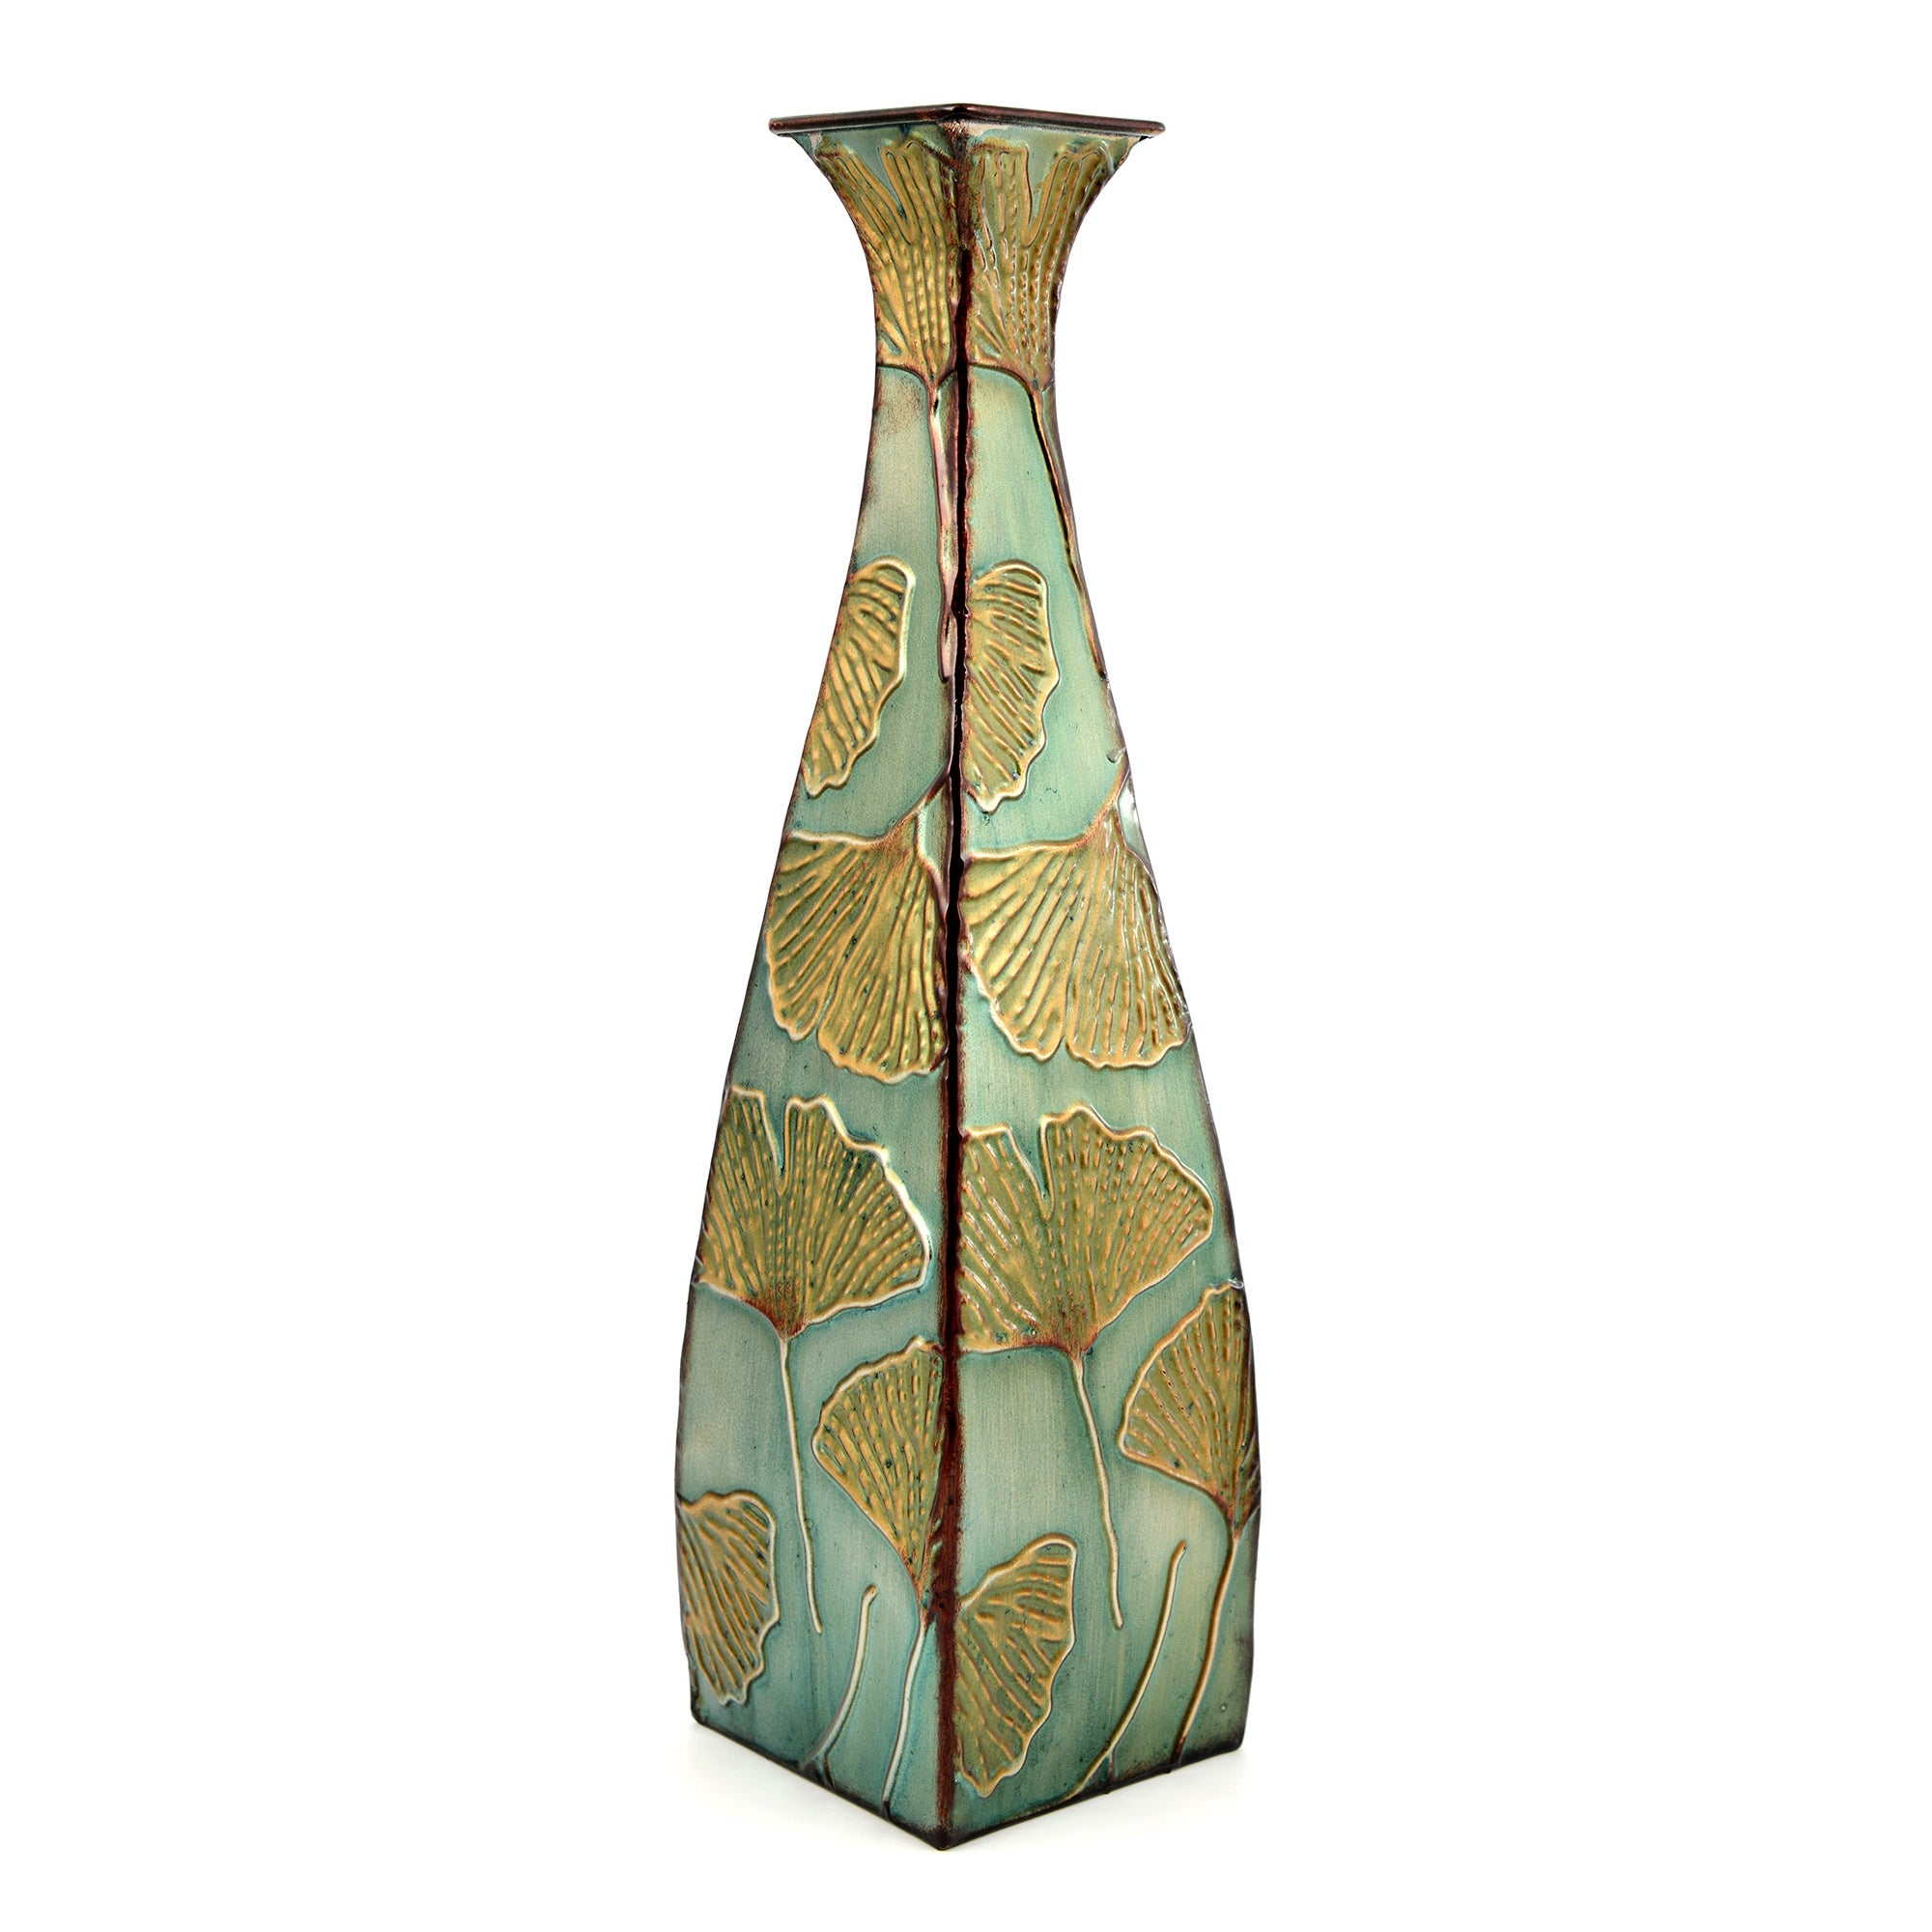 Global Fusion Collection Tall Metal Ginko Vase